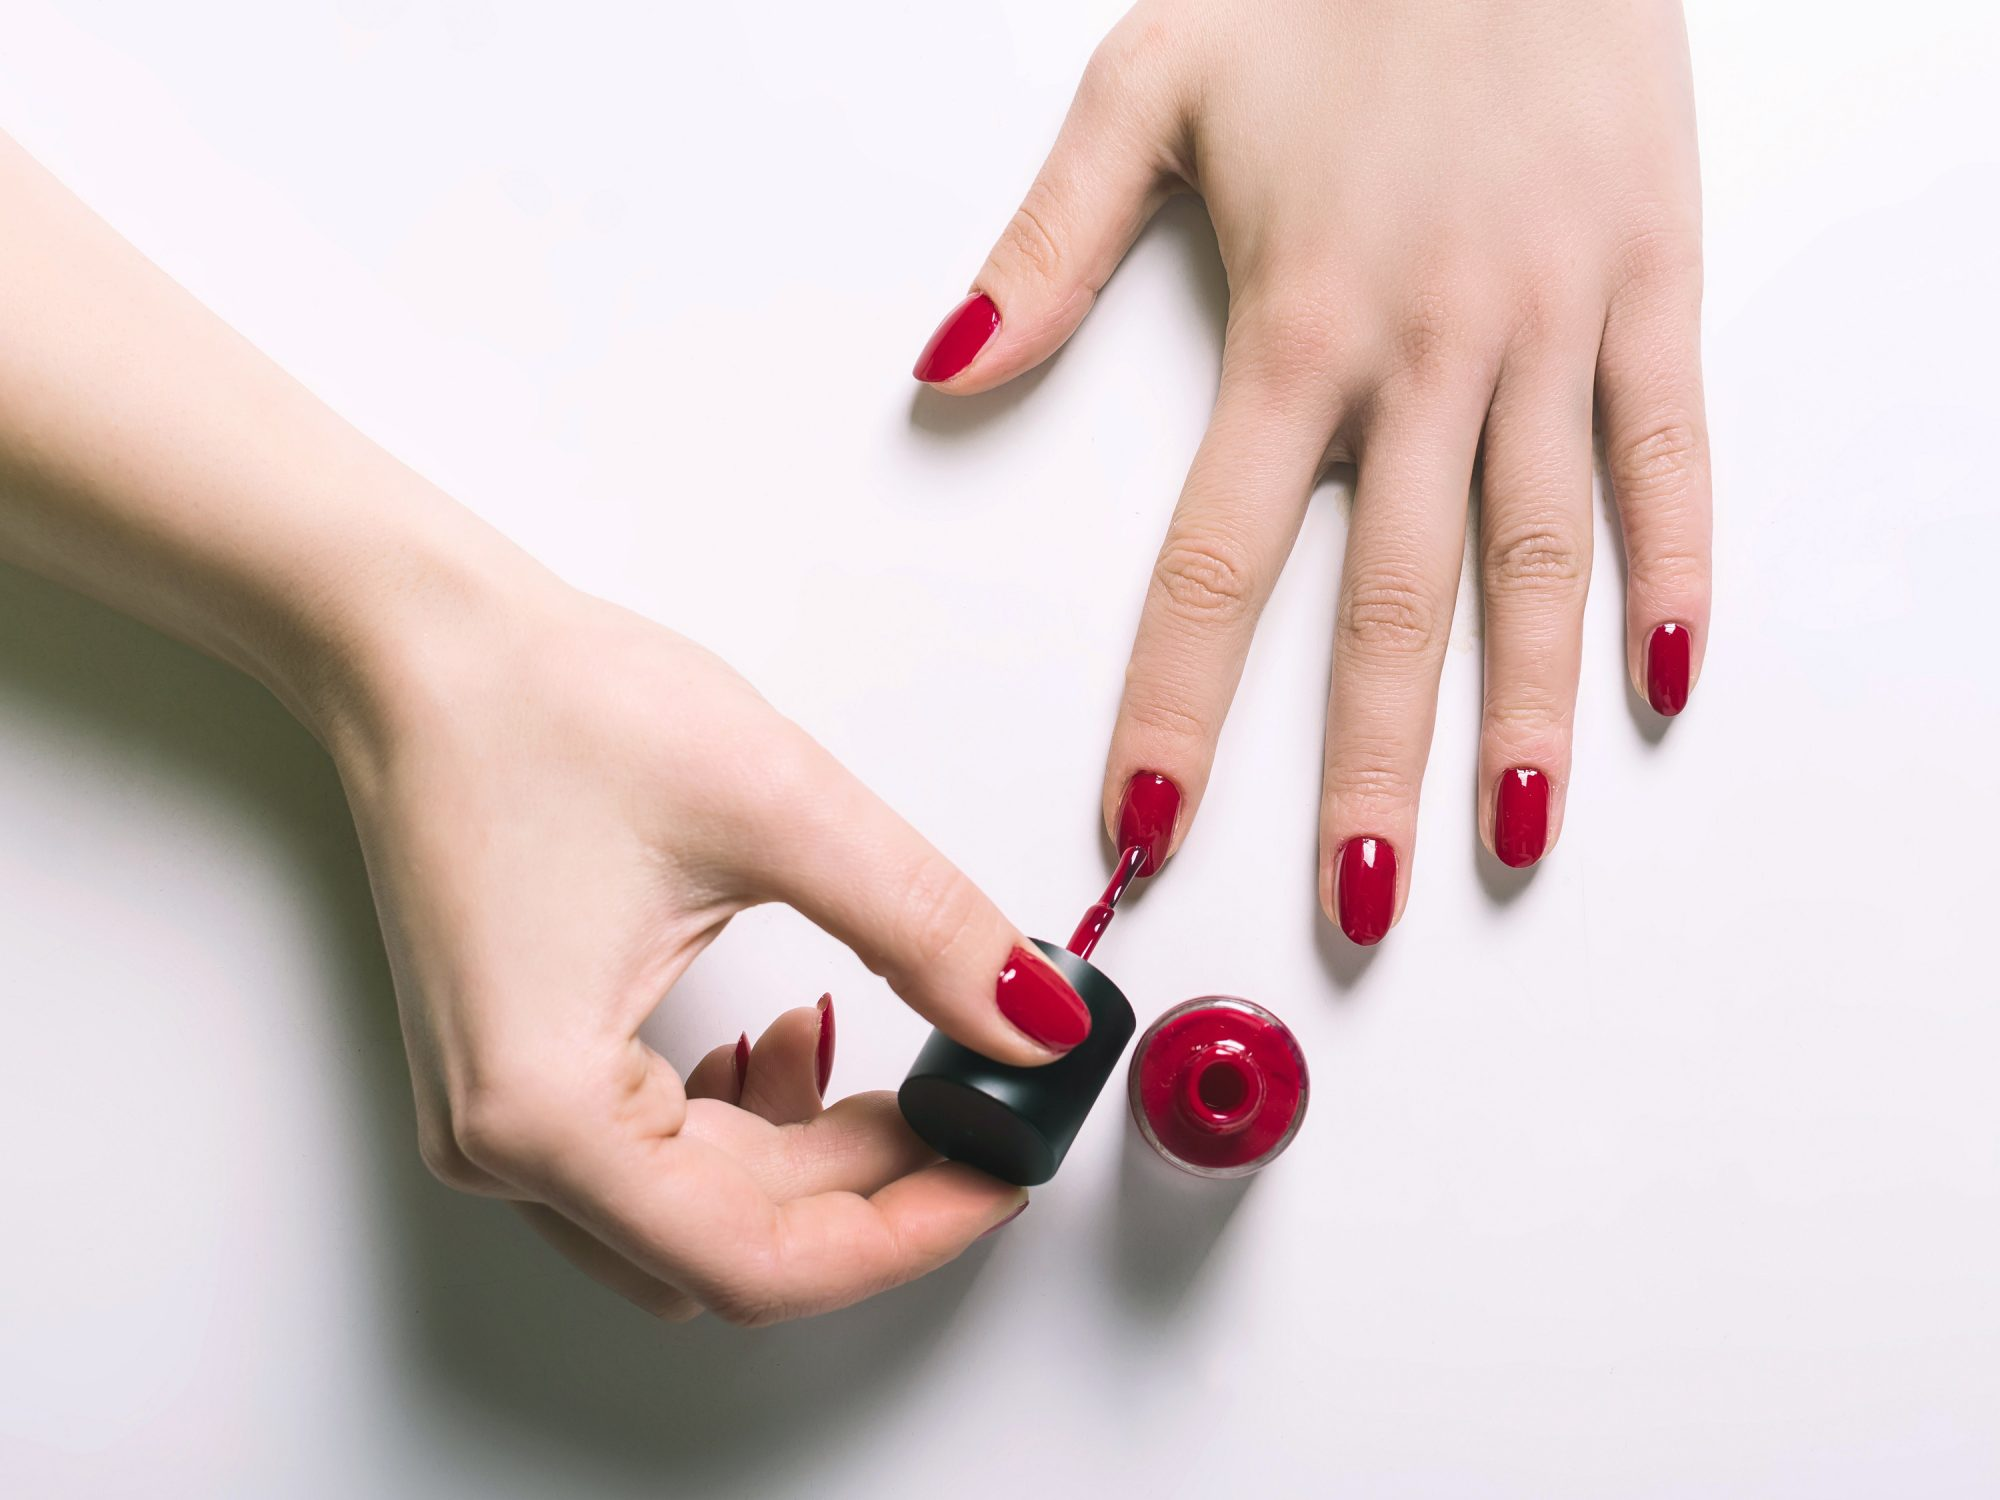 Younger Hands - Red Nail Polish